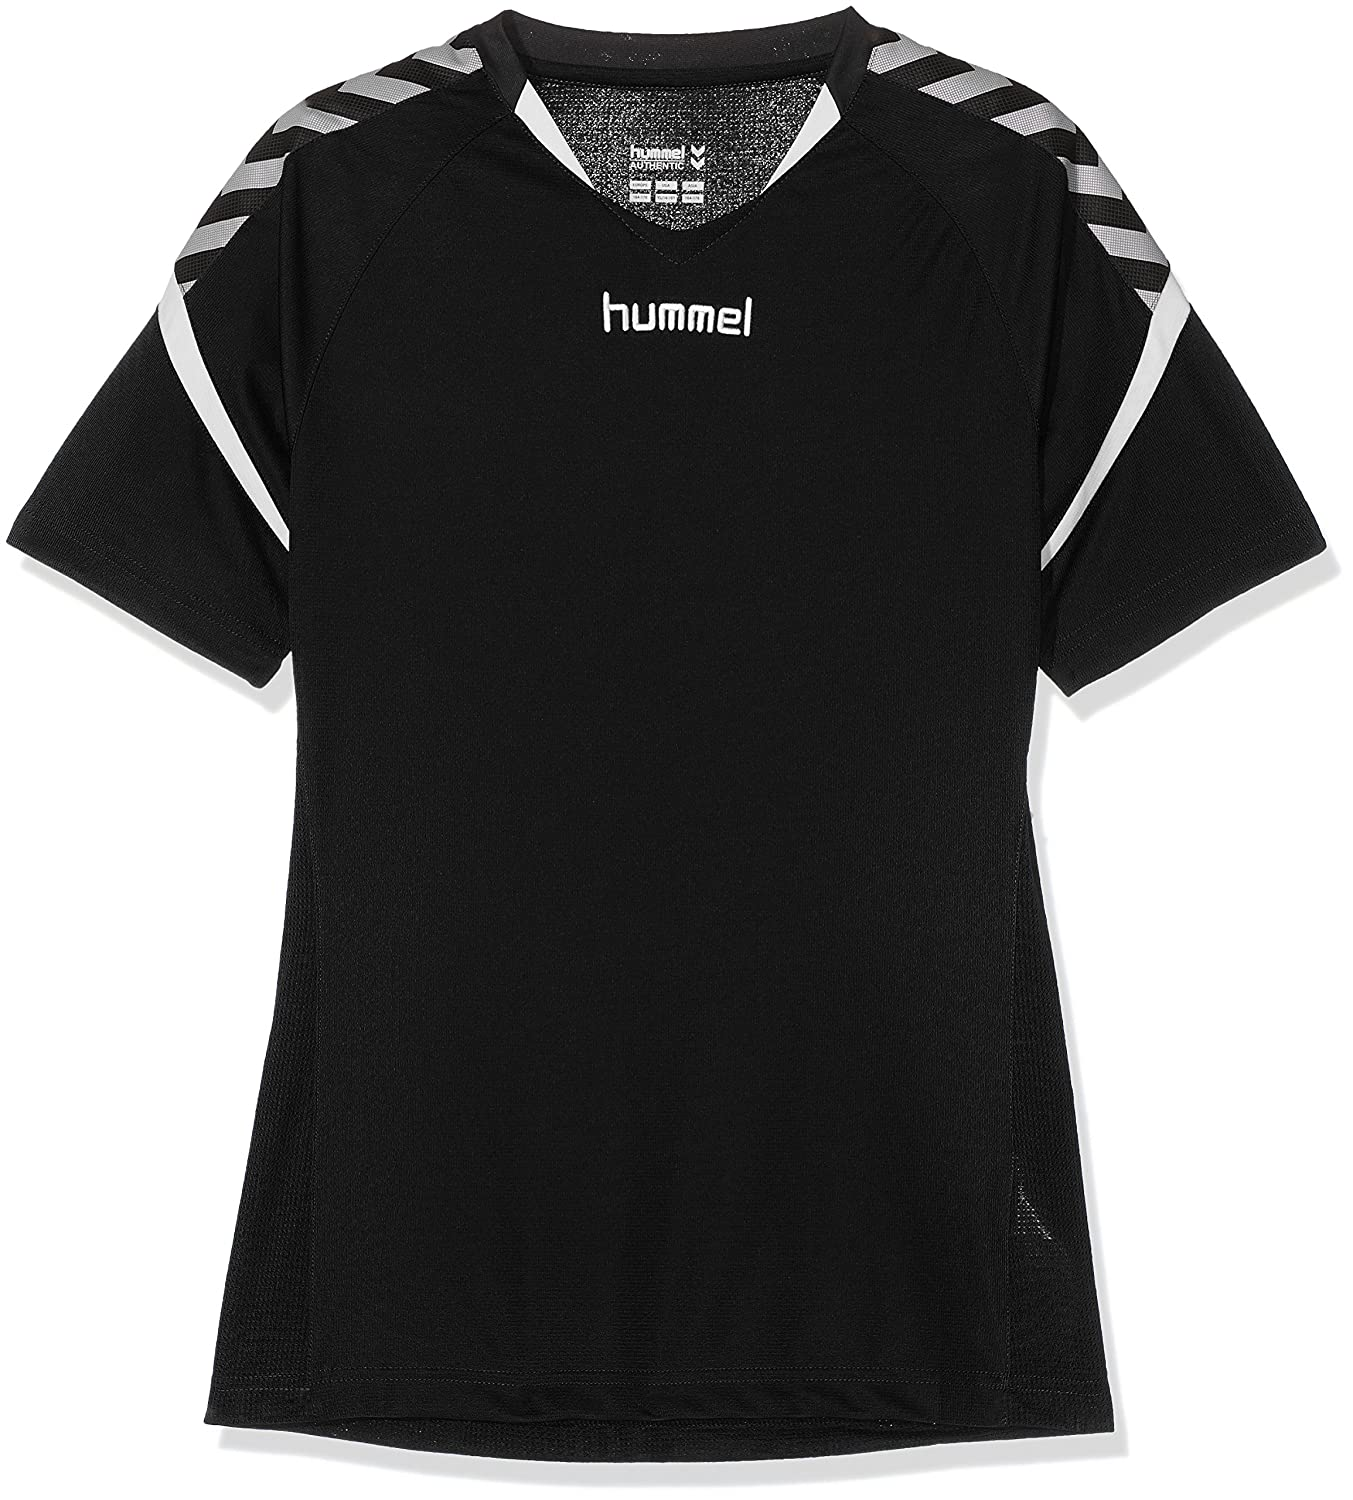 hummel Niños AUTH. Charge Short Sleeve Poly Jersey Camiseta